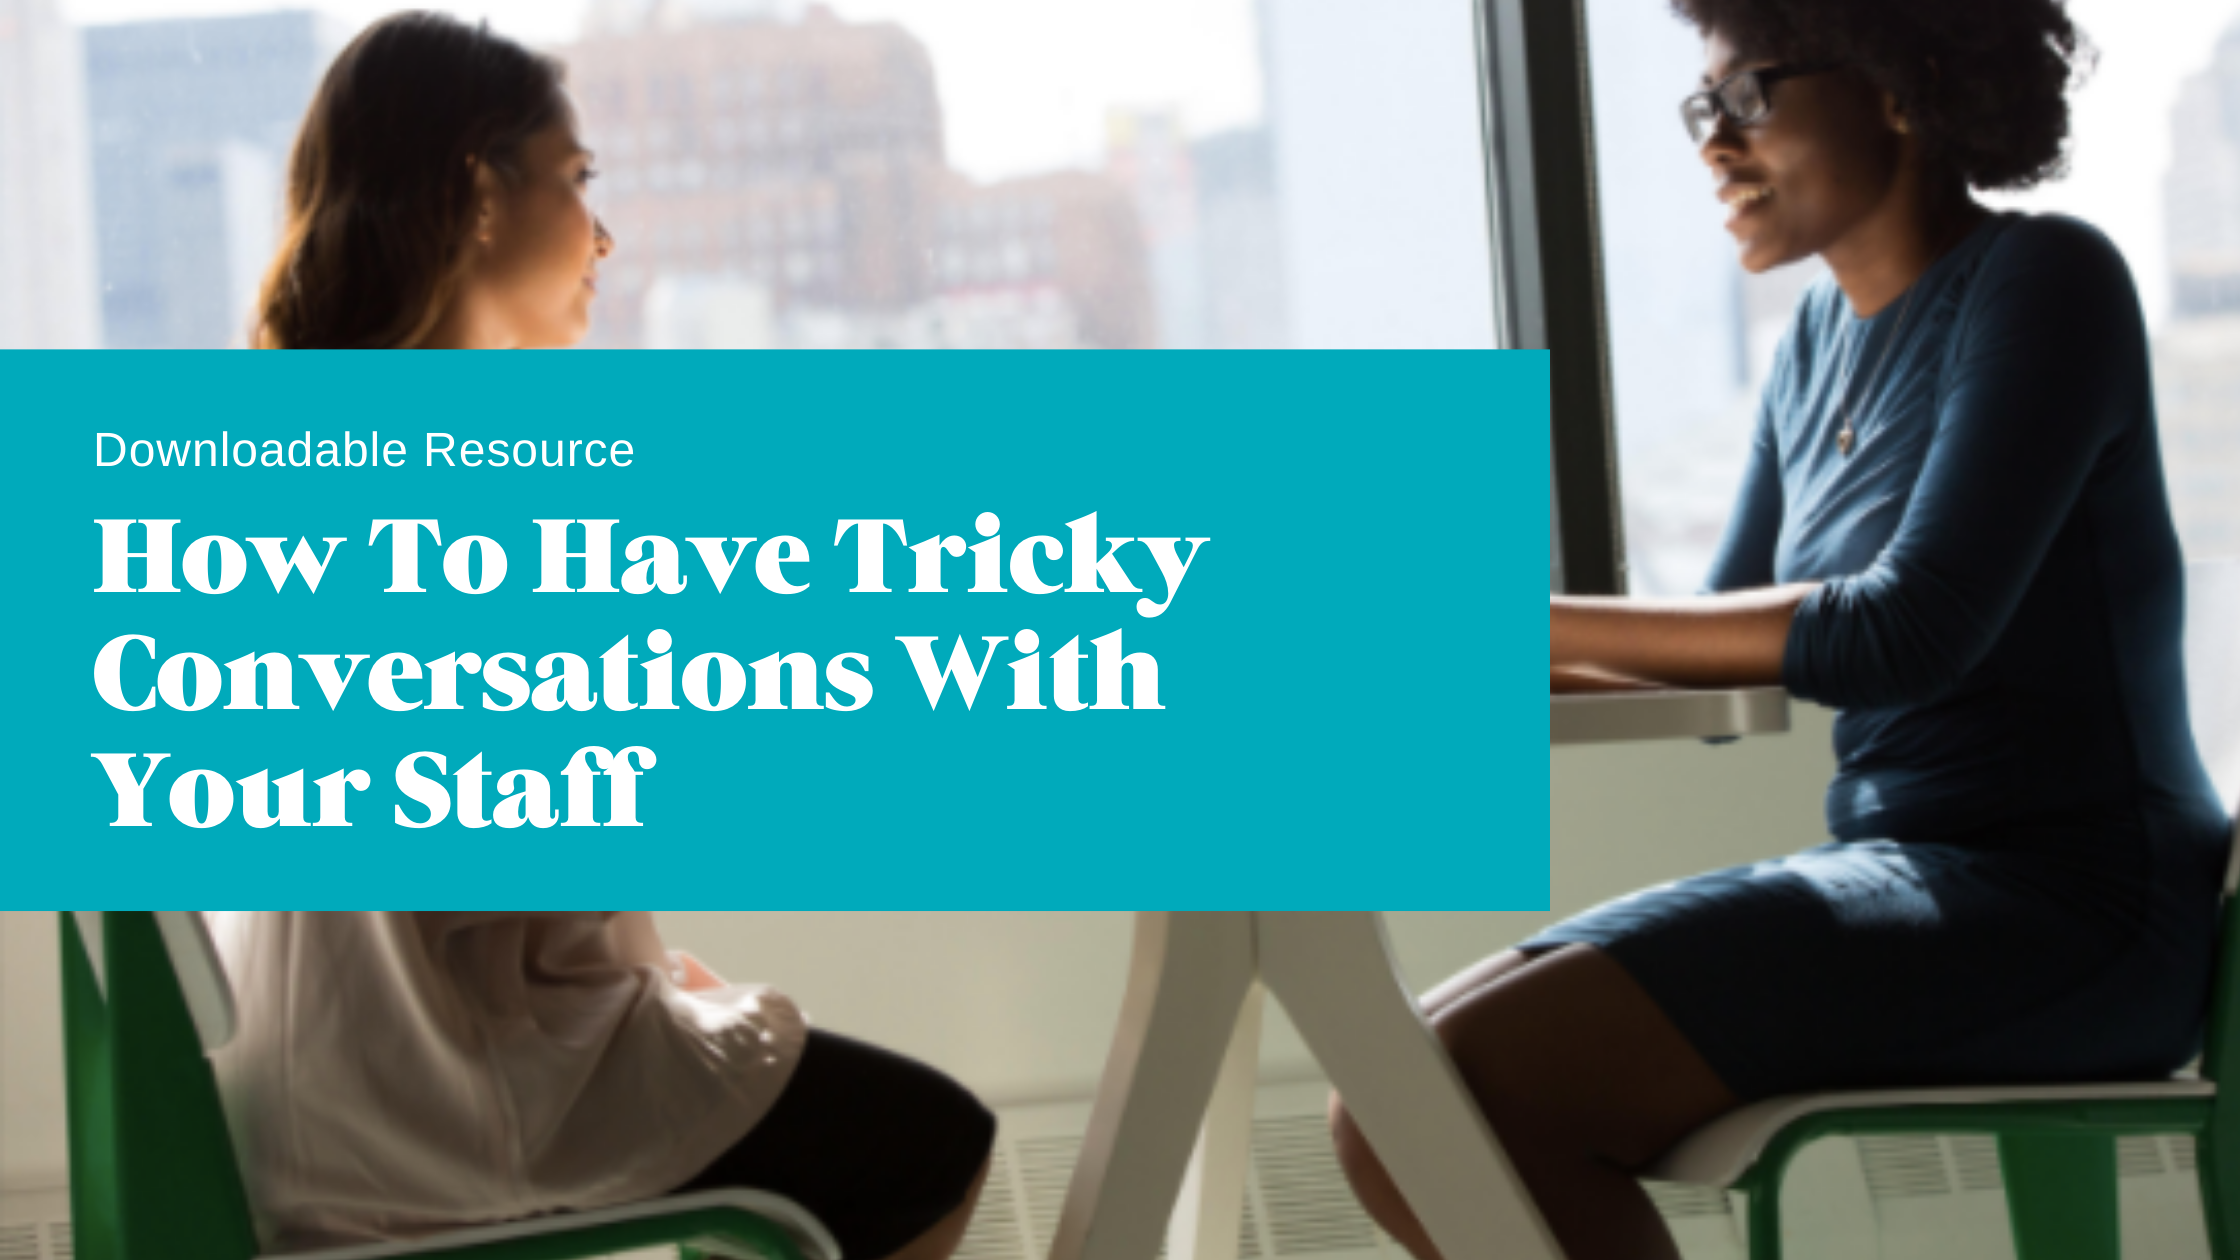 Downloadable resource how to have tricky conversations with your staff